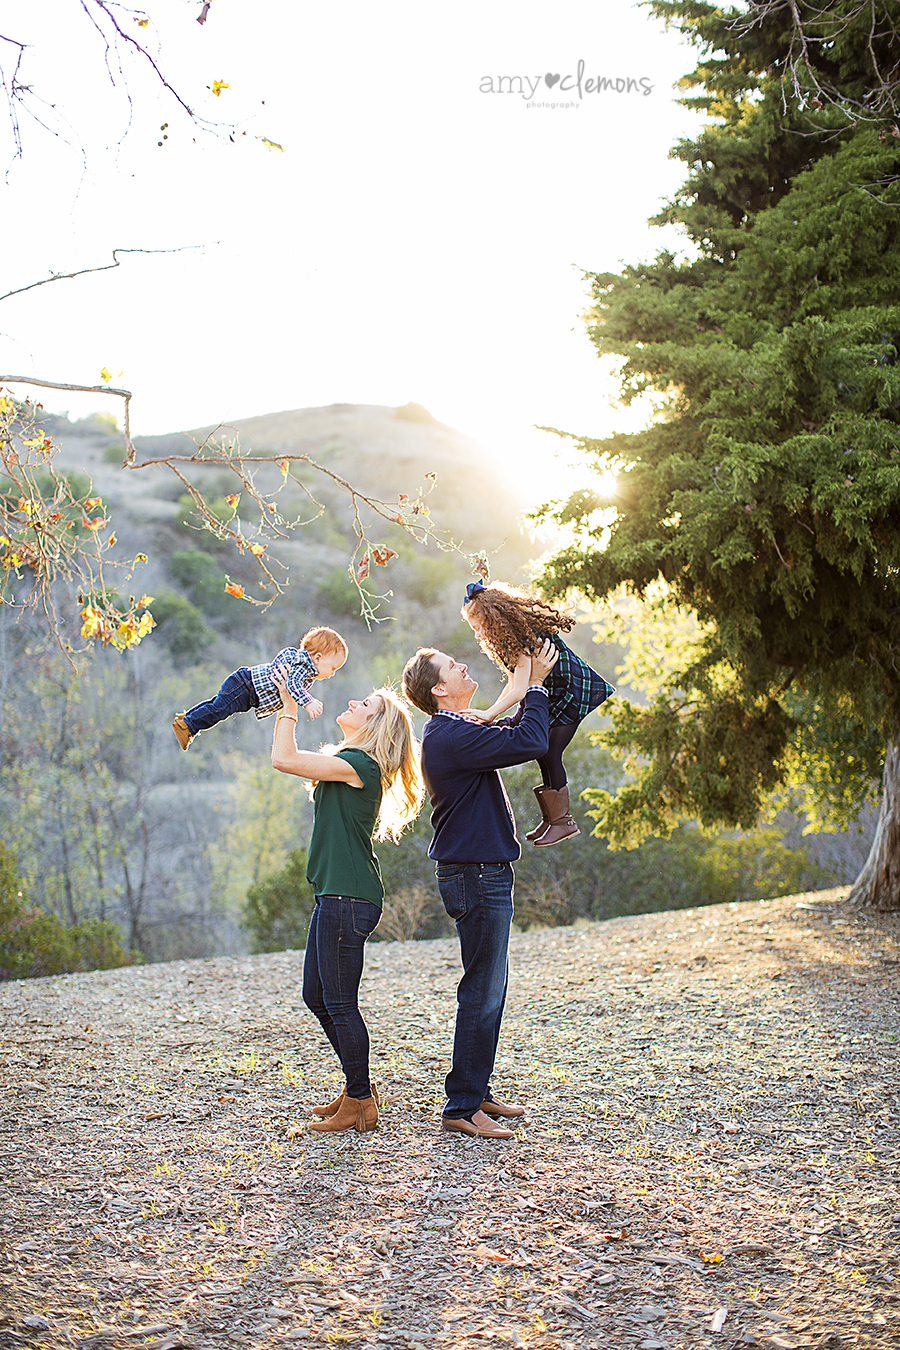 Brea CA, Carbon Canyon Park, Amy Clemons Photography (13)